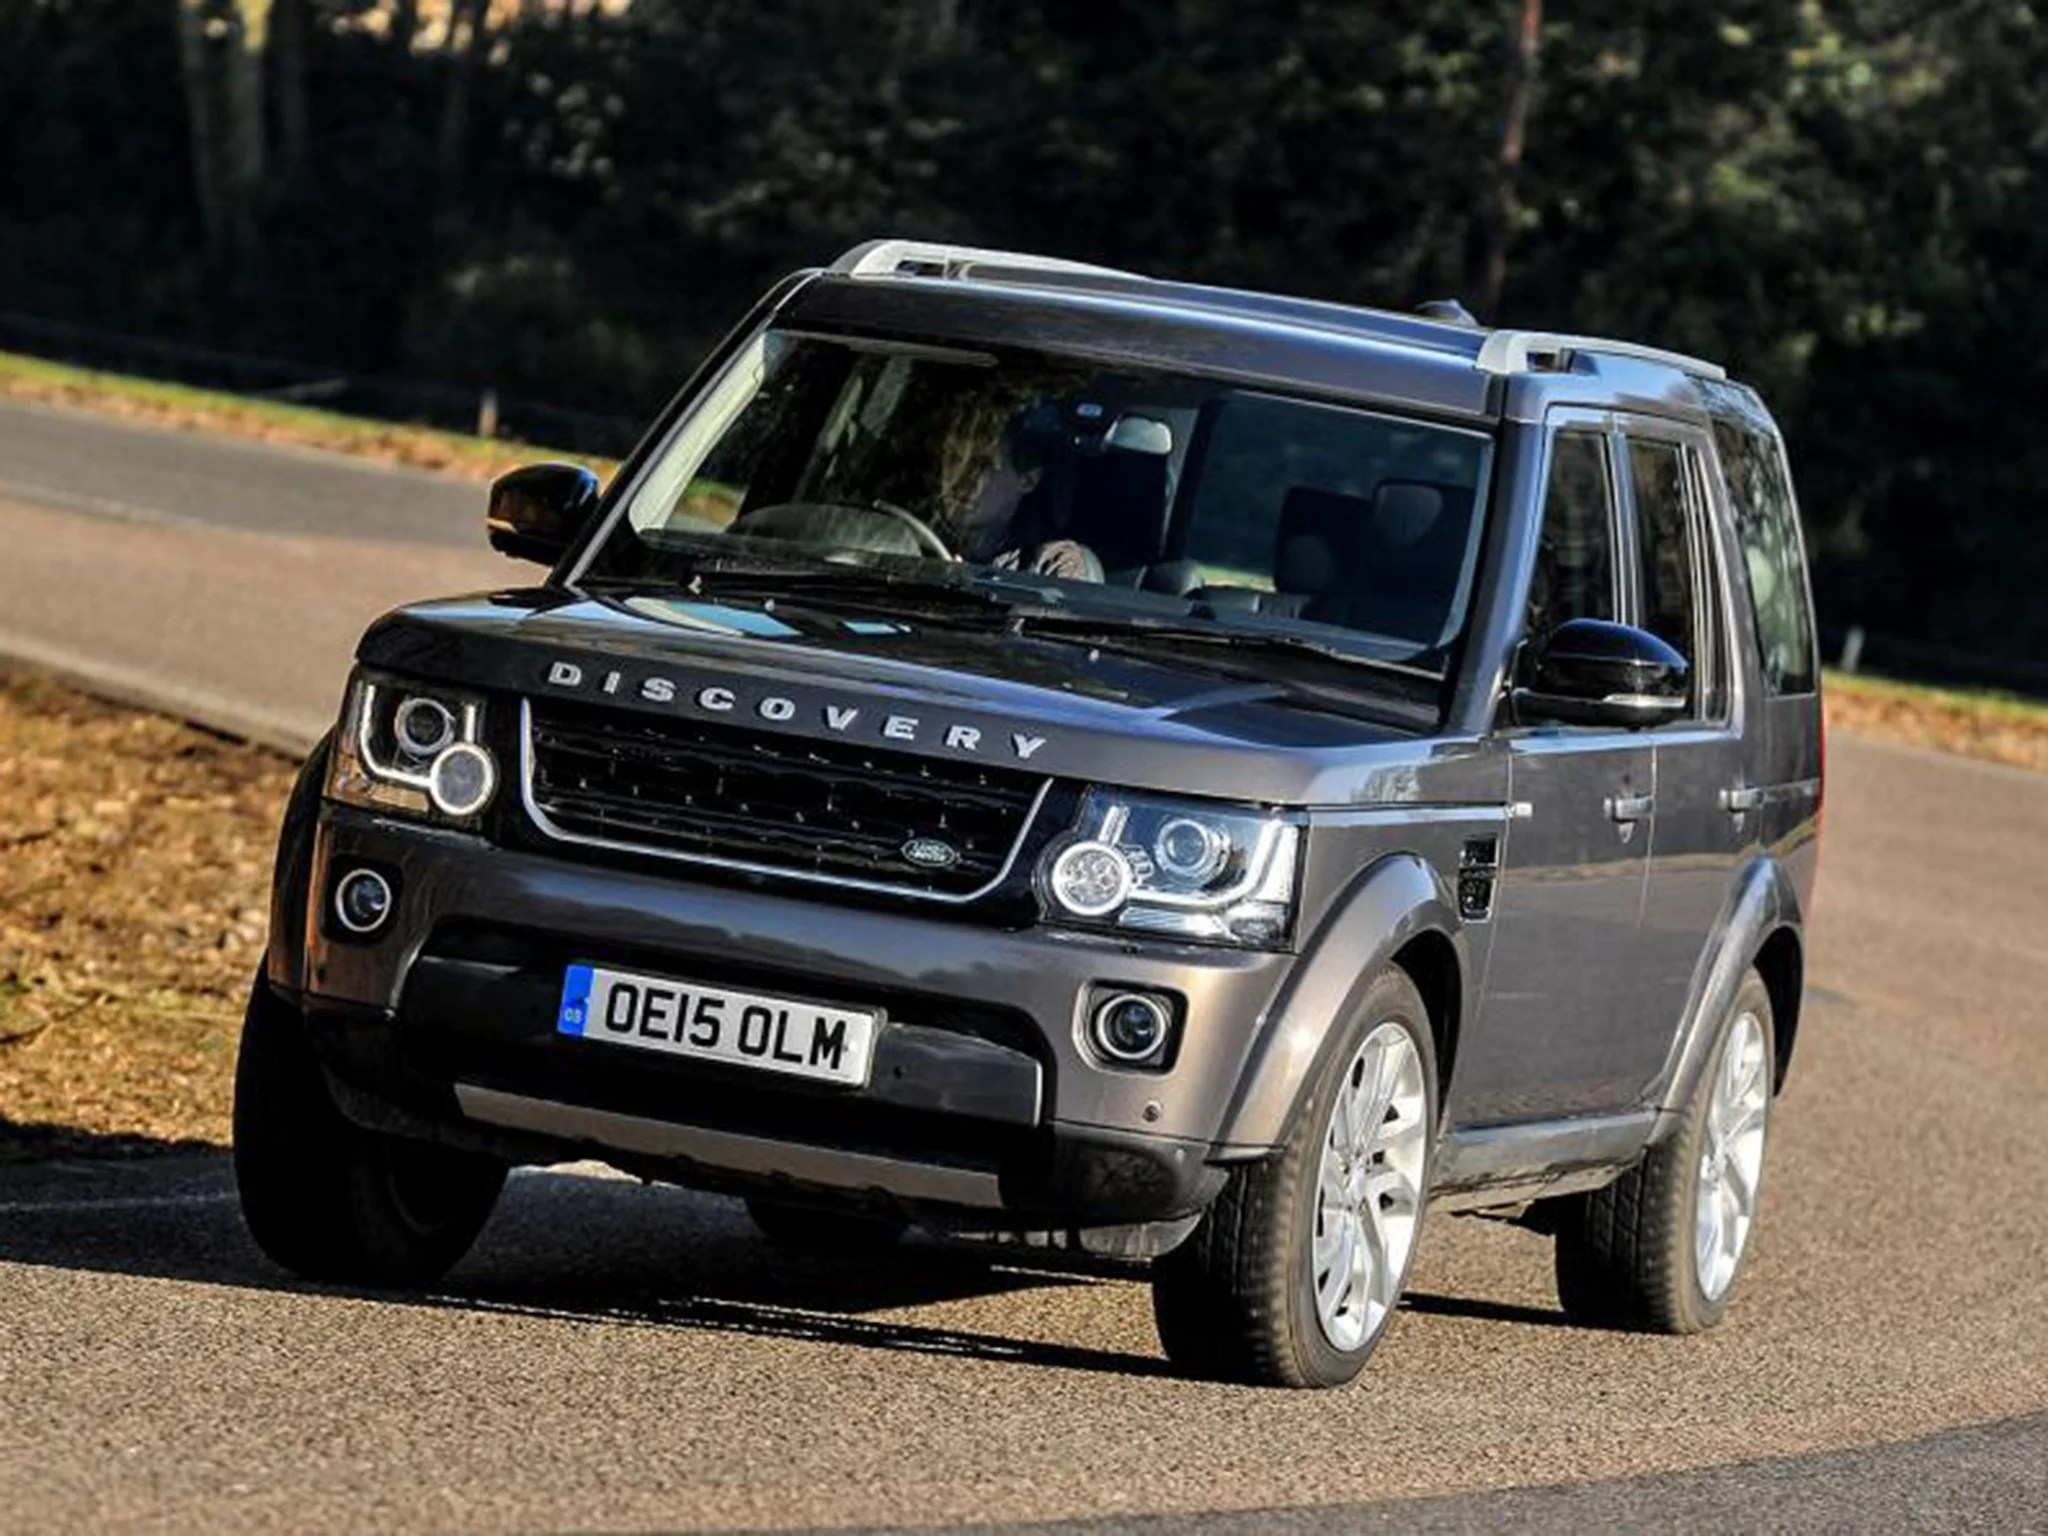 Land Rover Discovery Landmark car review Level of luxury and